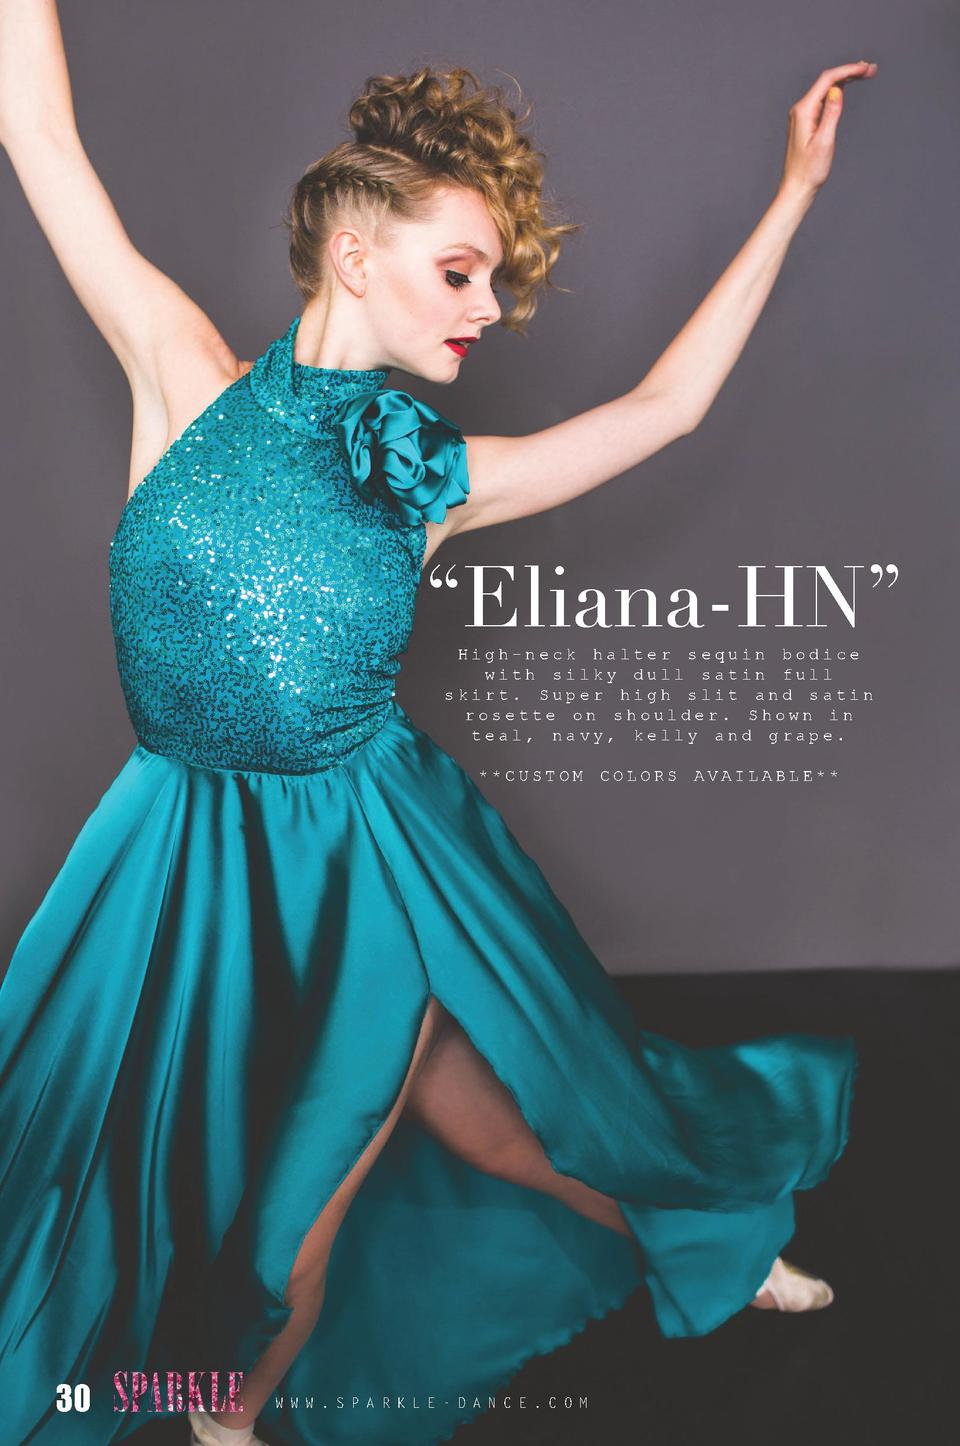 Eliana-HN    High-neck halter sequin bodice with silky dull satin full skirt. Super high slit and satin rosette on shou...